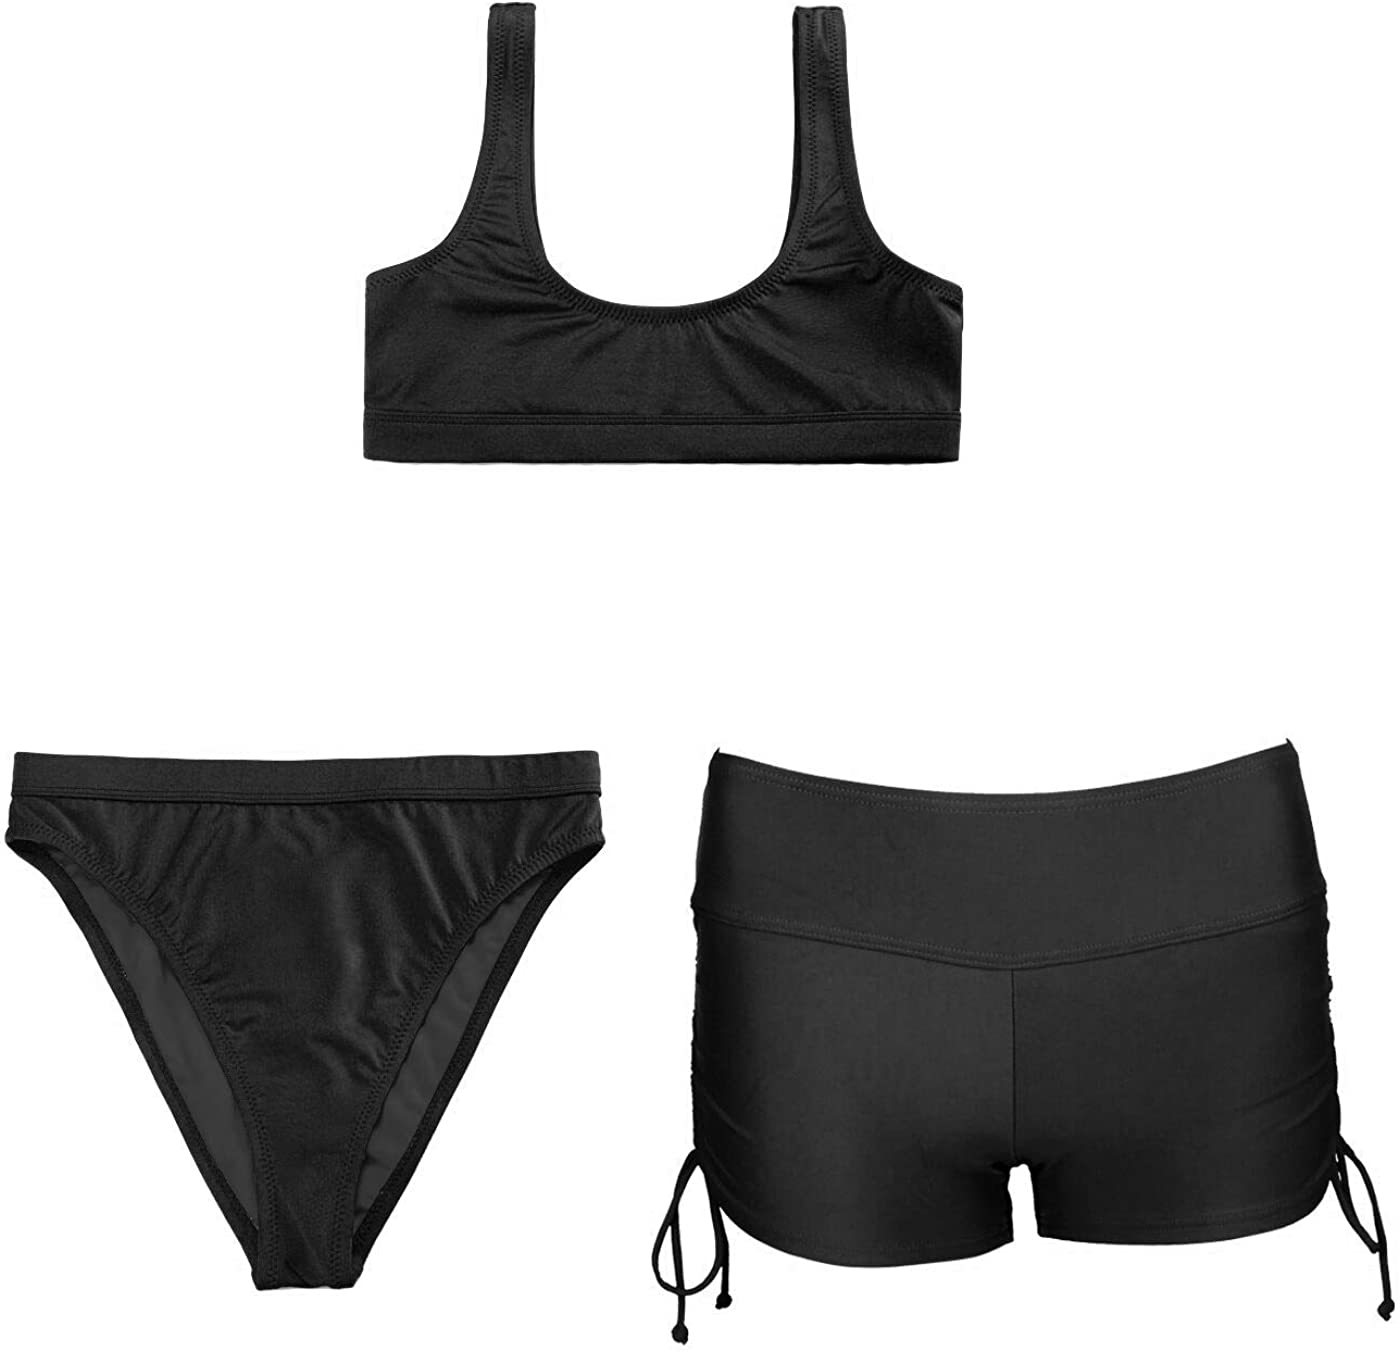 Women's Bikini Sets Two Pieces Swimsuits + One Piece Swim Short with Adjustable Side Ties Crop Top High Waisted Swimsuit